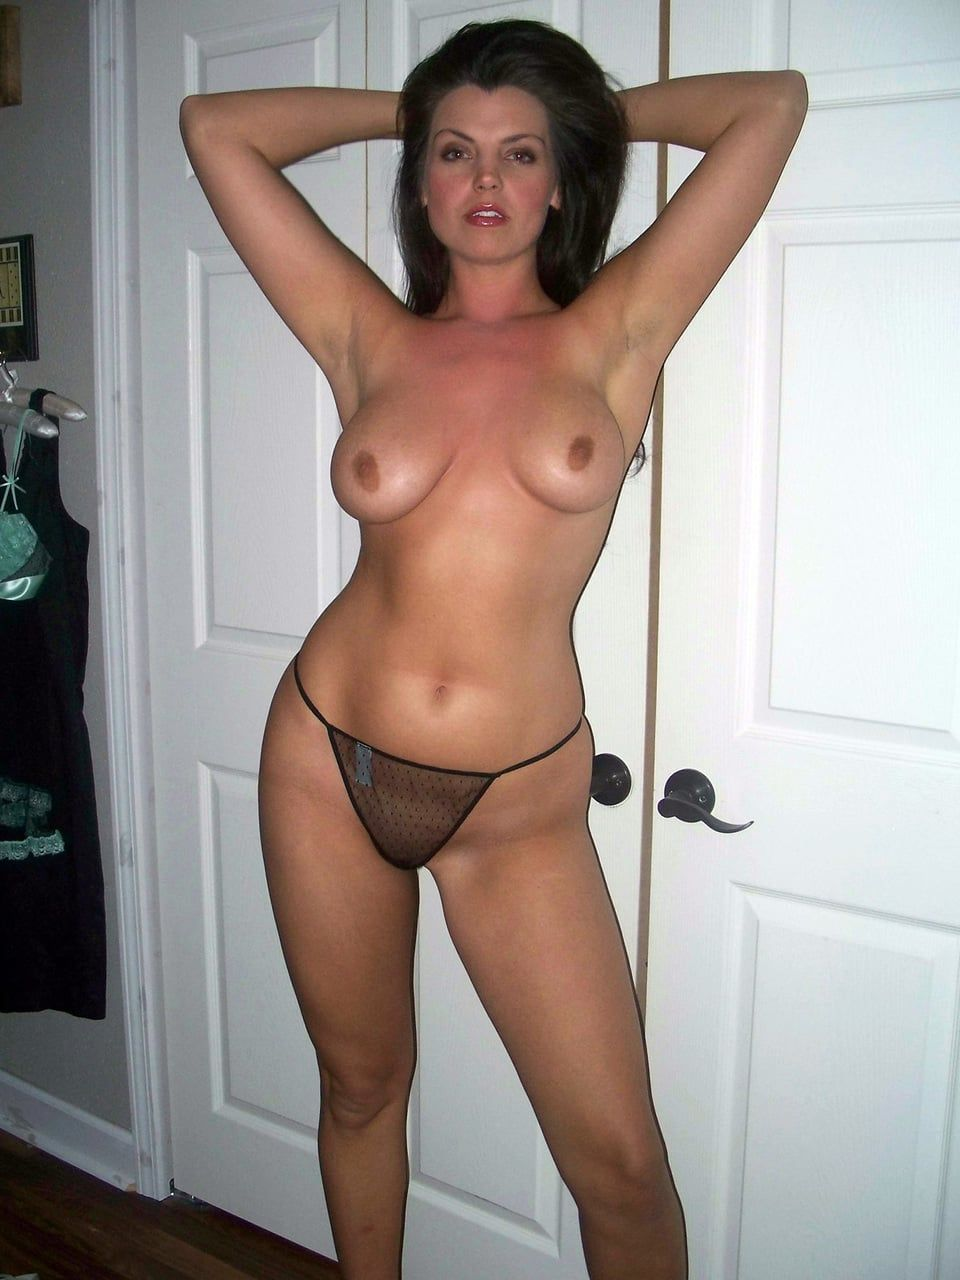 hotmoms nude